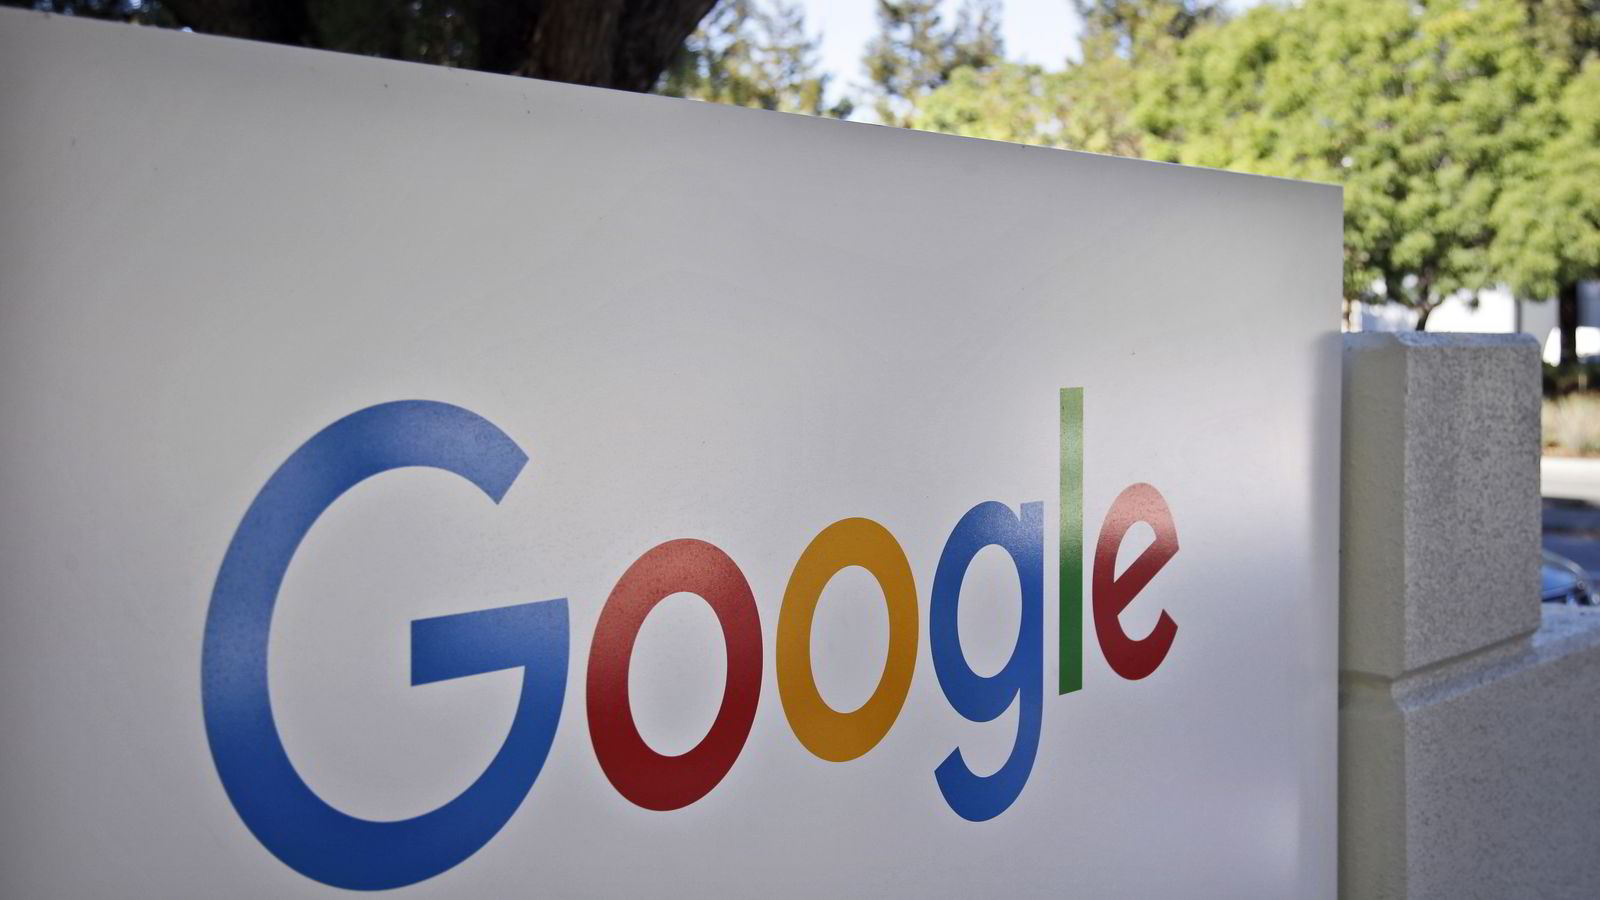 Googles logo utenfor hovedkvarteret i Mountain View i California i USA. Foto: Marcio Jose Sanches/AP/NTB SCANPIX.